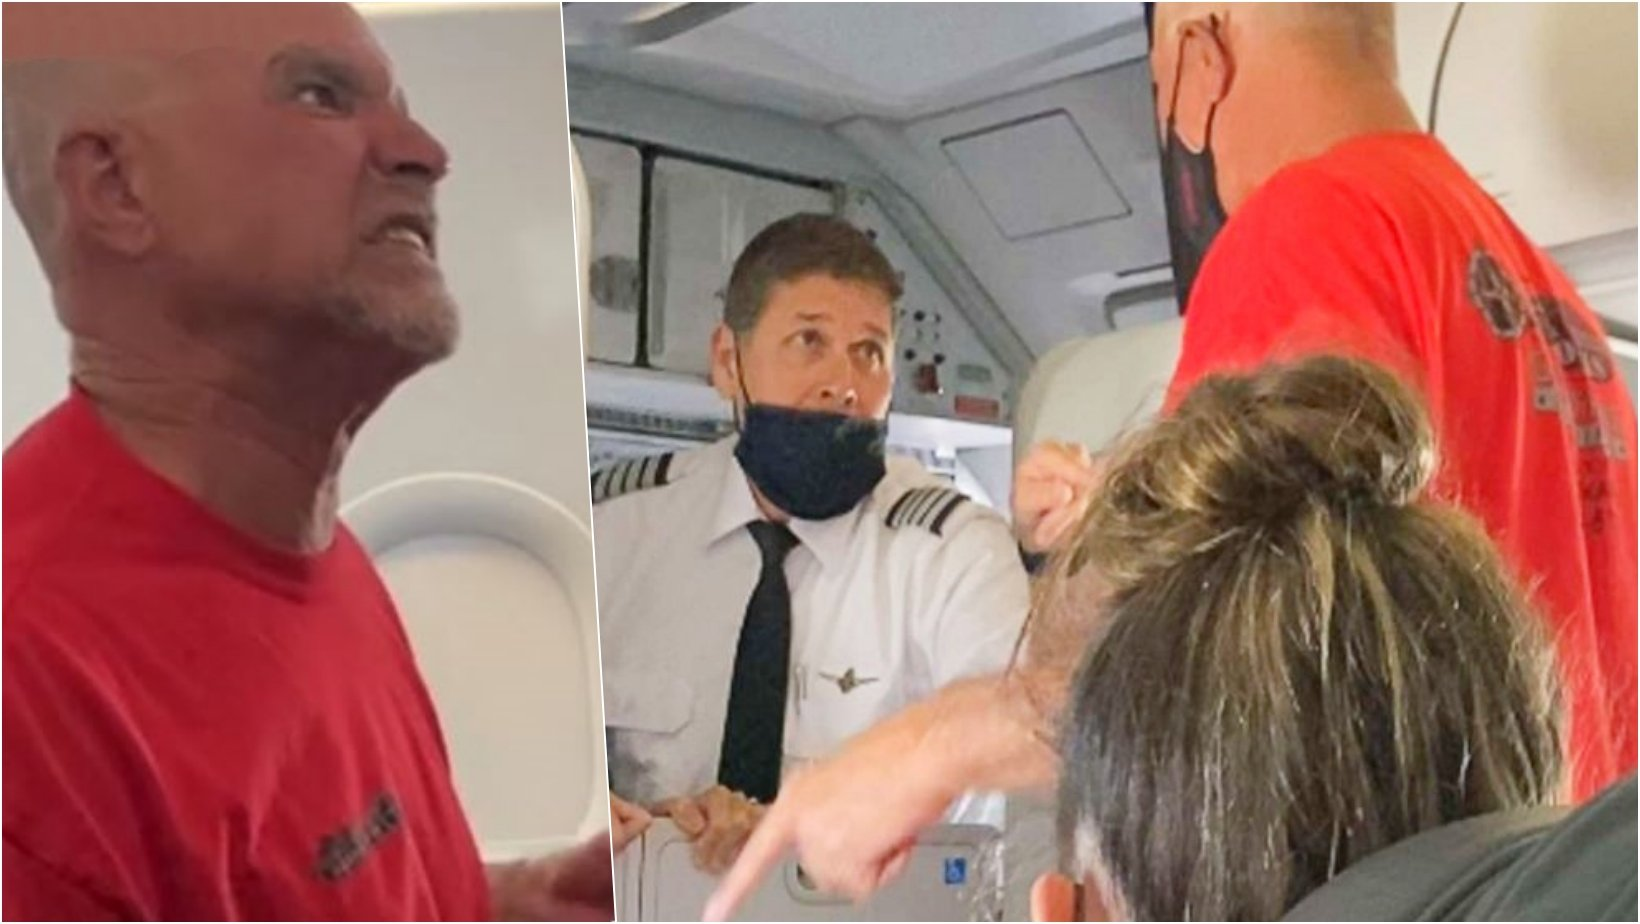 6 facebook cover 10.jpg?resize=1200,630 - Drunk Passenger Arrested After Growling Like An Animal At Flight Attendants And Reportedly Shouting Vile, Abusive Rants Towards Them